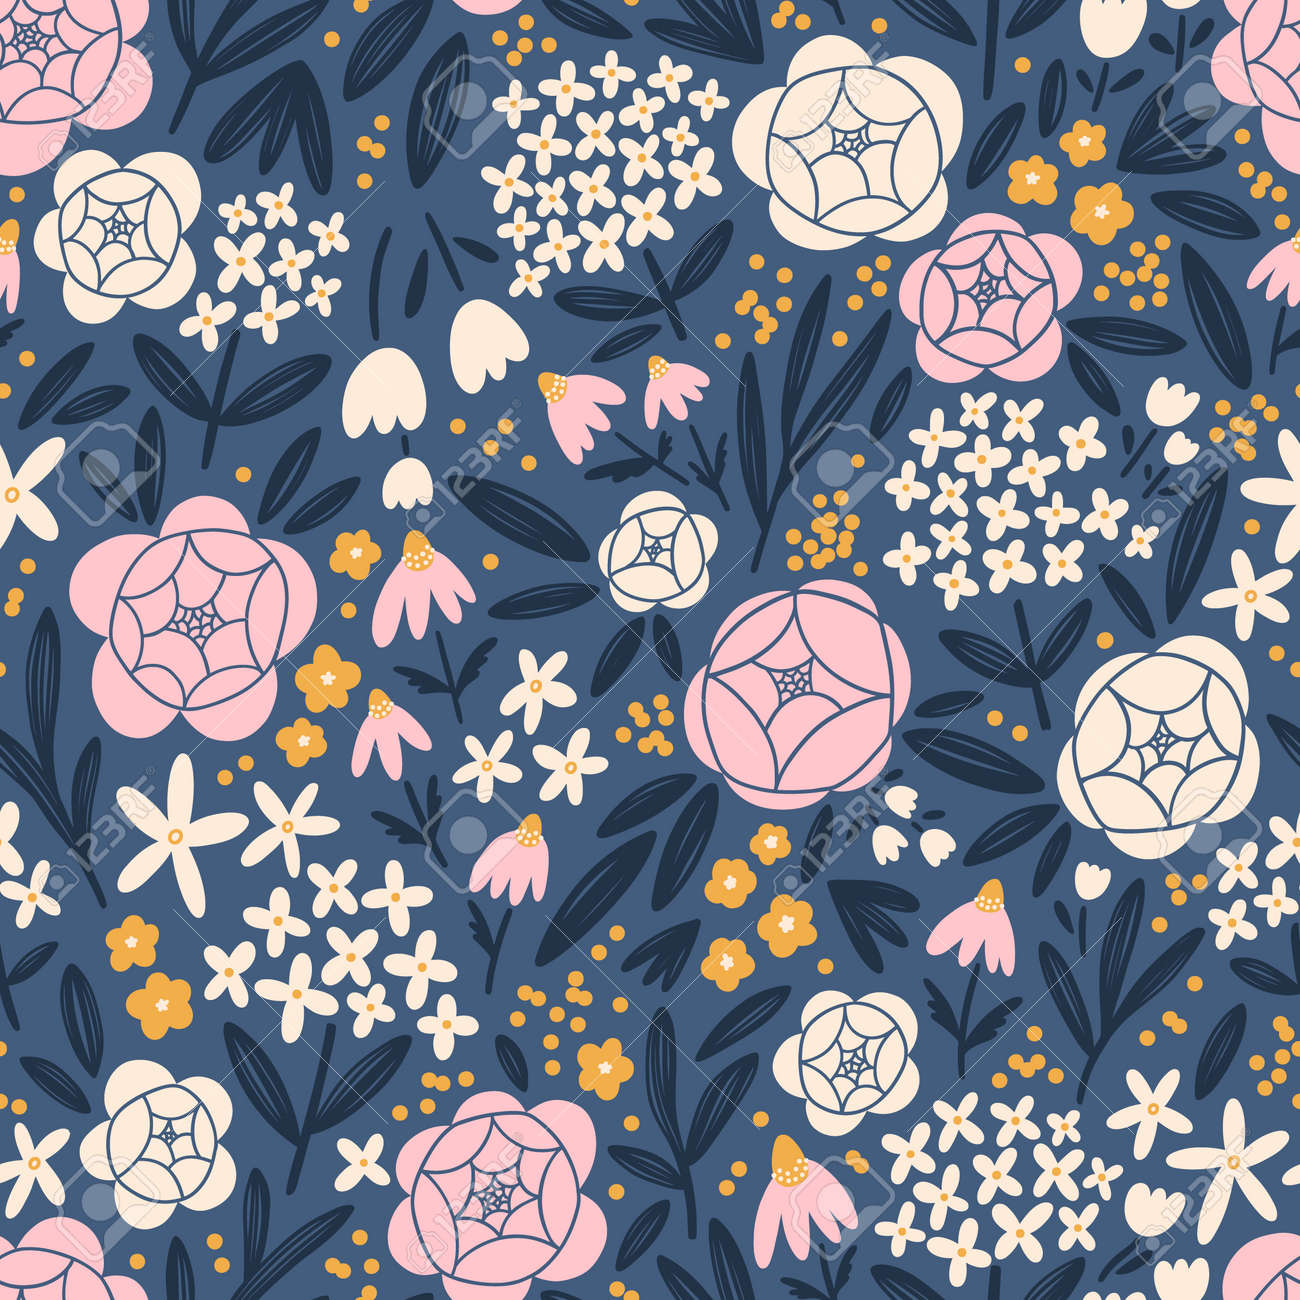 Hydrangeas, roses and other beautiful flowers bloom, vector seamless pattern - 170268194